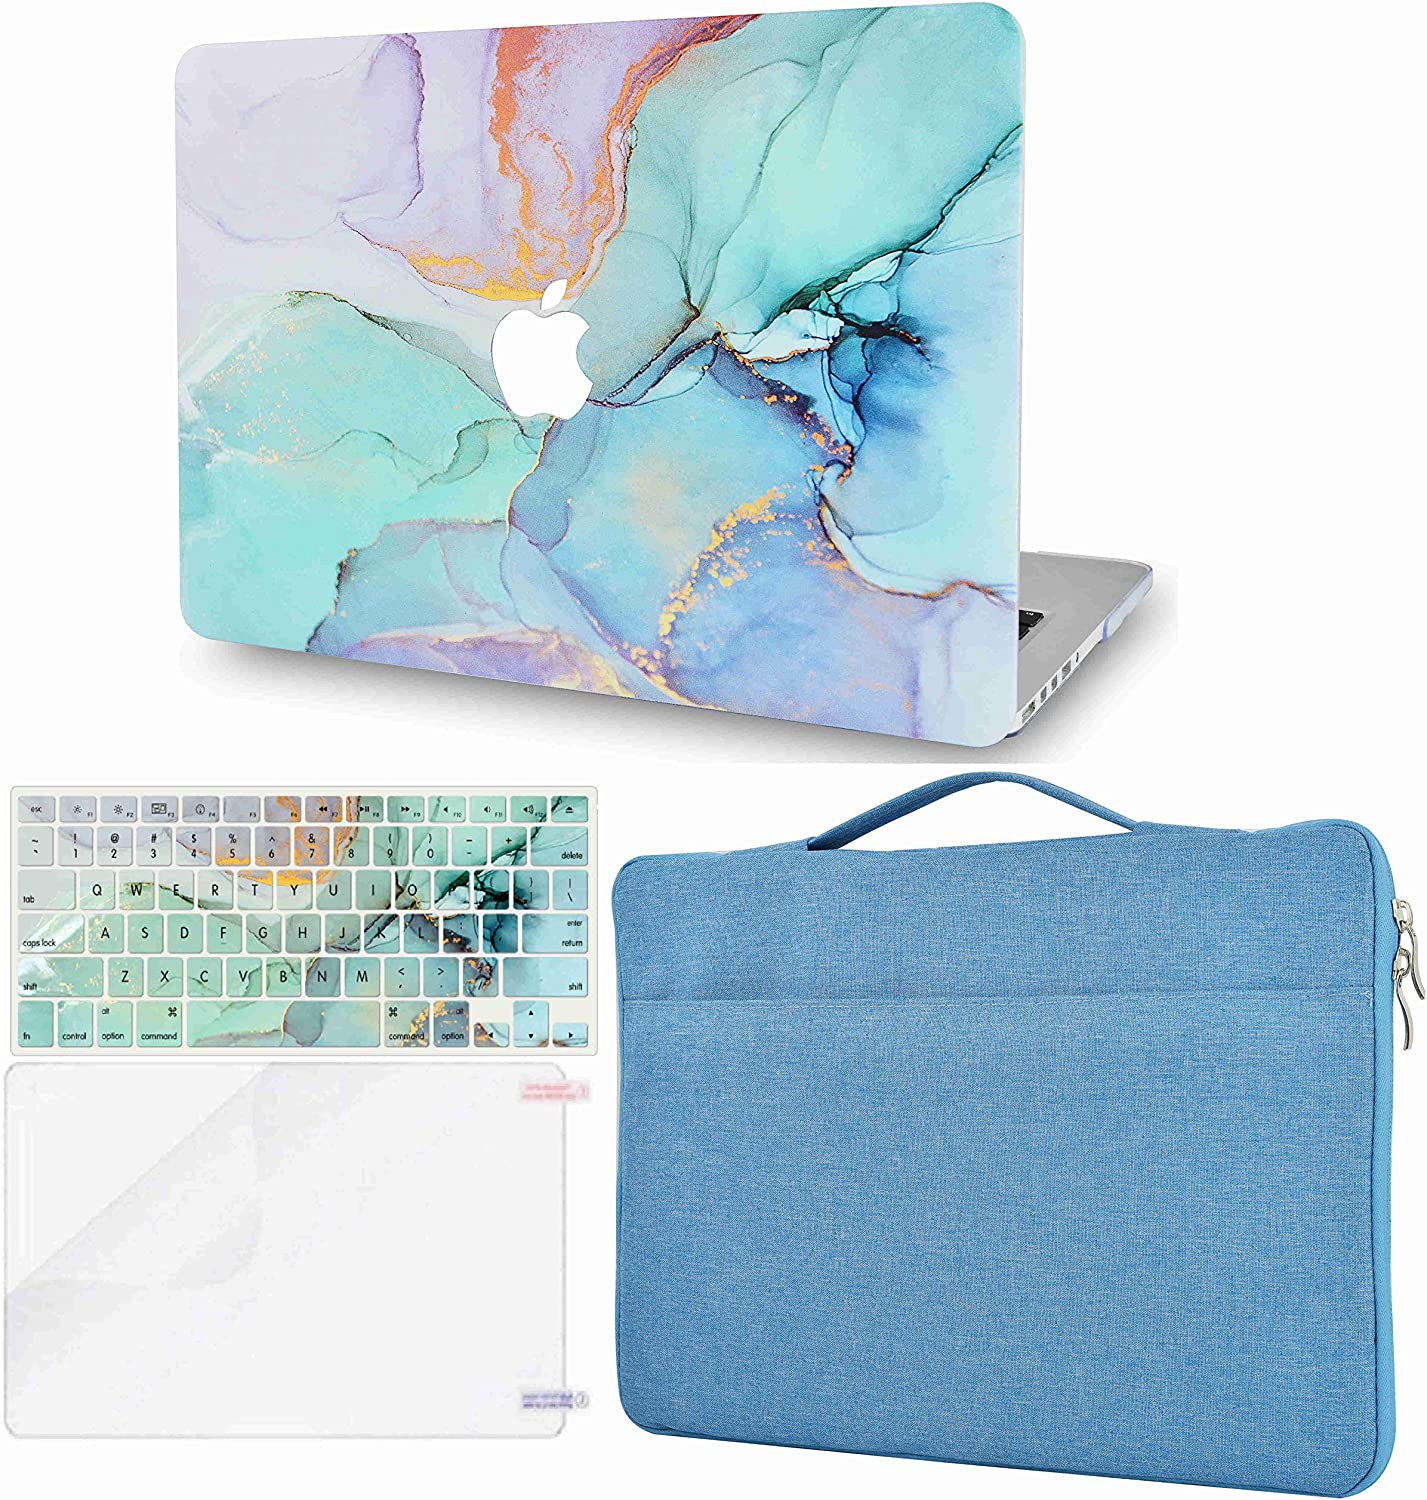 LuvCase 4 in 1 Laptop Case Compatible with MacBook New Air 13 Inch (2021/2020) A2337 M1/A2179 (Touch ID) Retina DisplayHardShellCover, Sleeve Bag, Keyboard Cover & Screen Protector (Teal Marble)